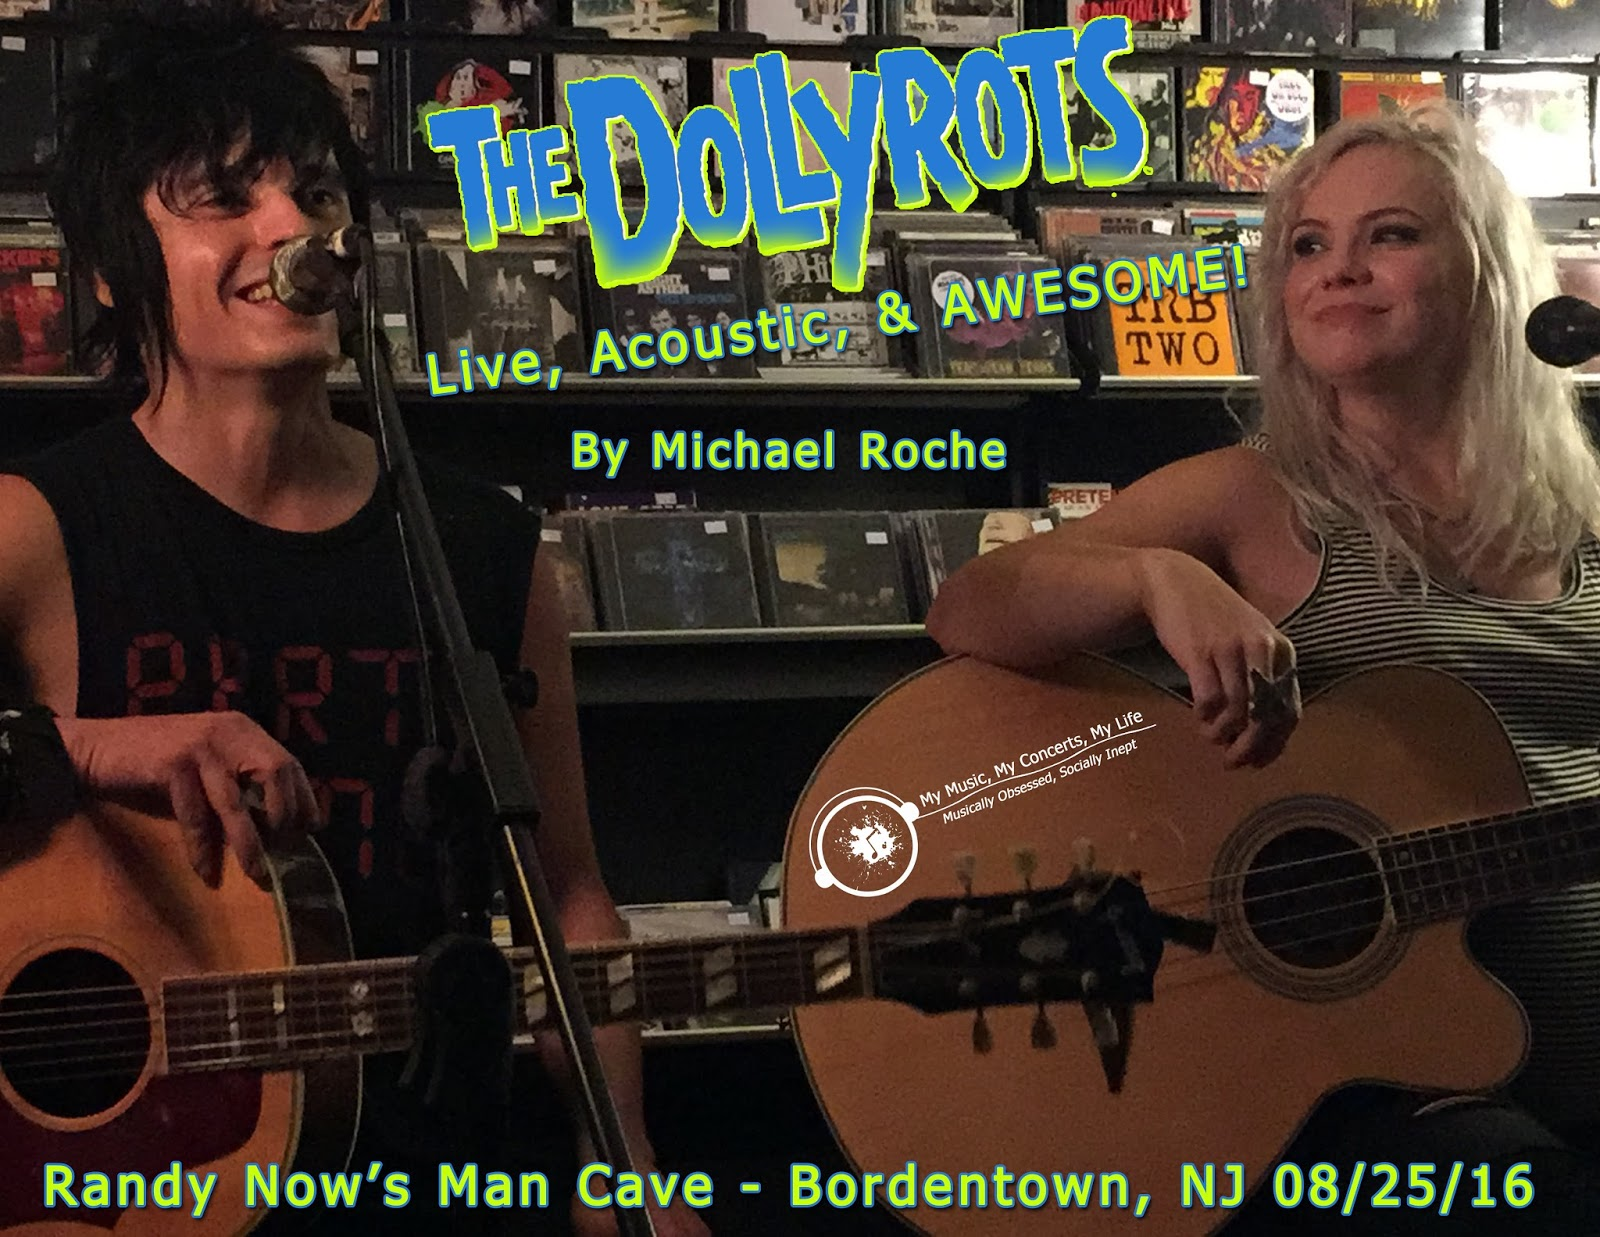 Man Cave Review : My music concerts life: concert review: the dollyrots live